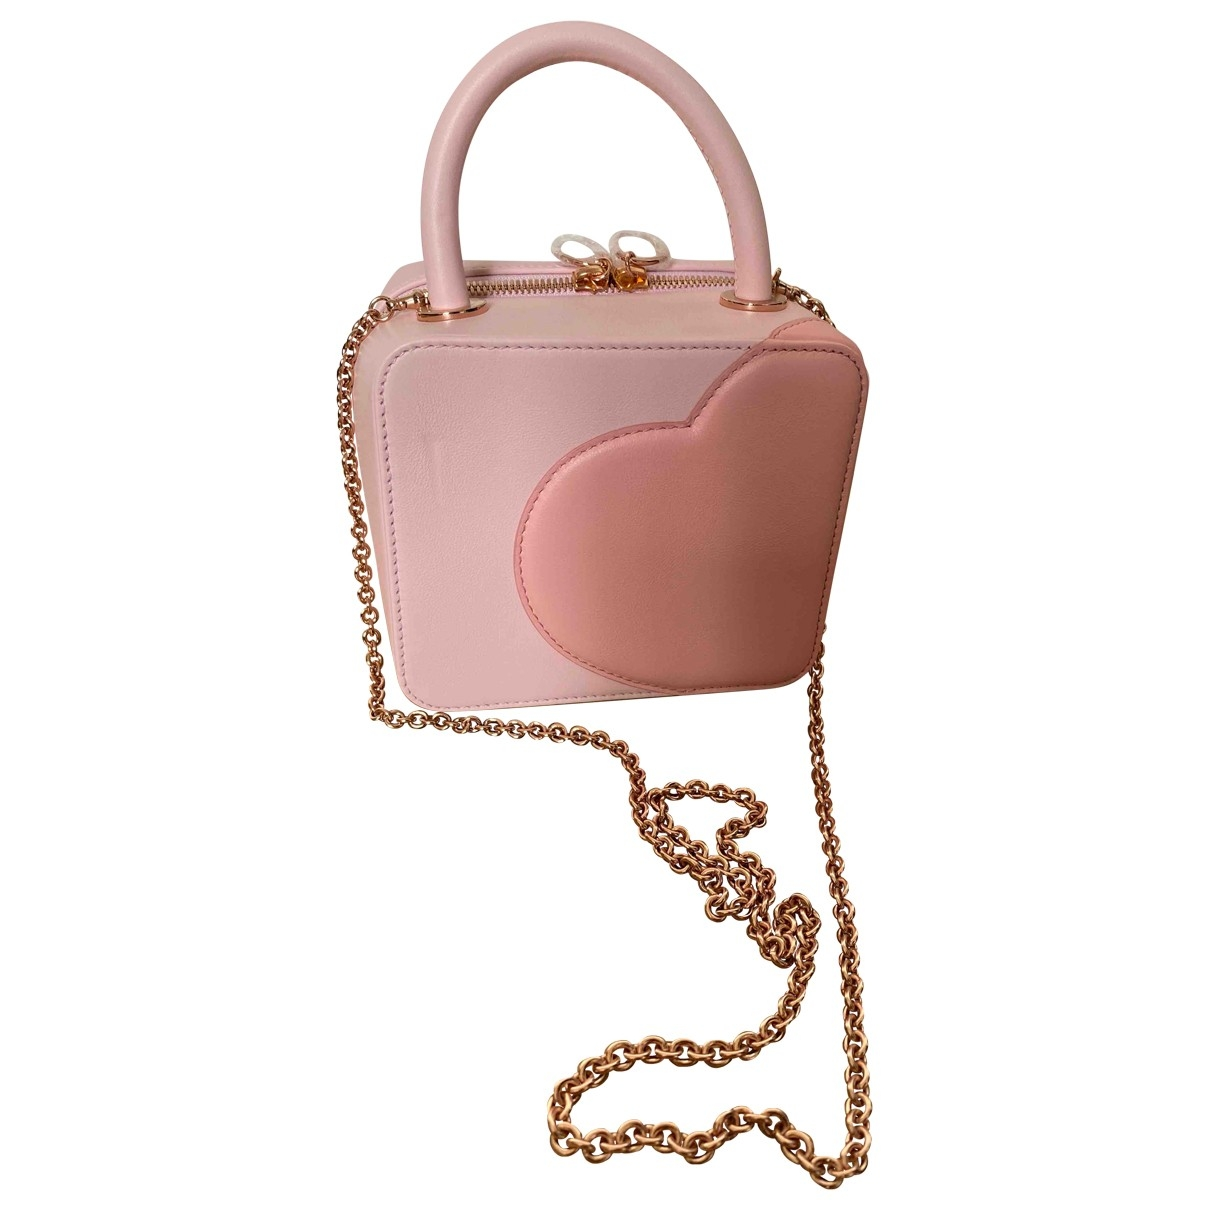 Chopard \N Pink Leather handbag for Women \N